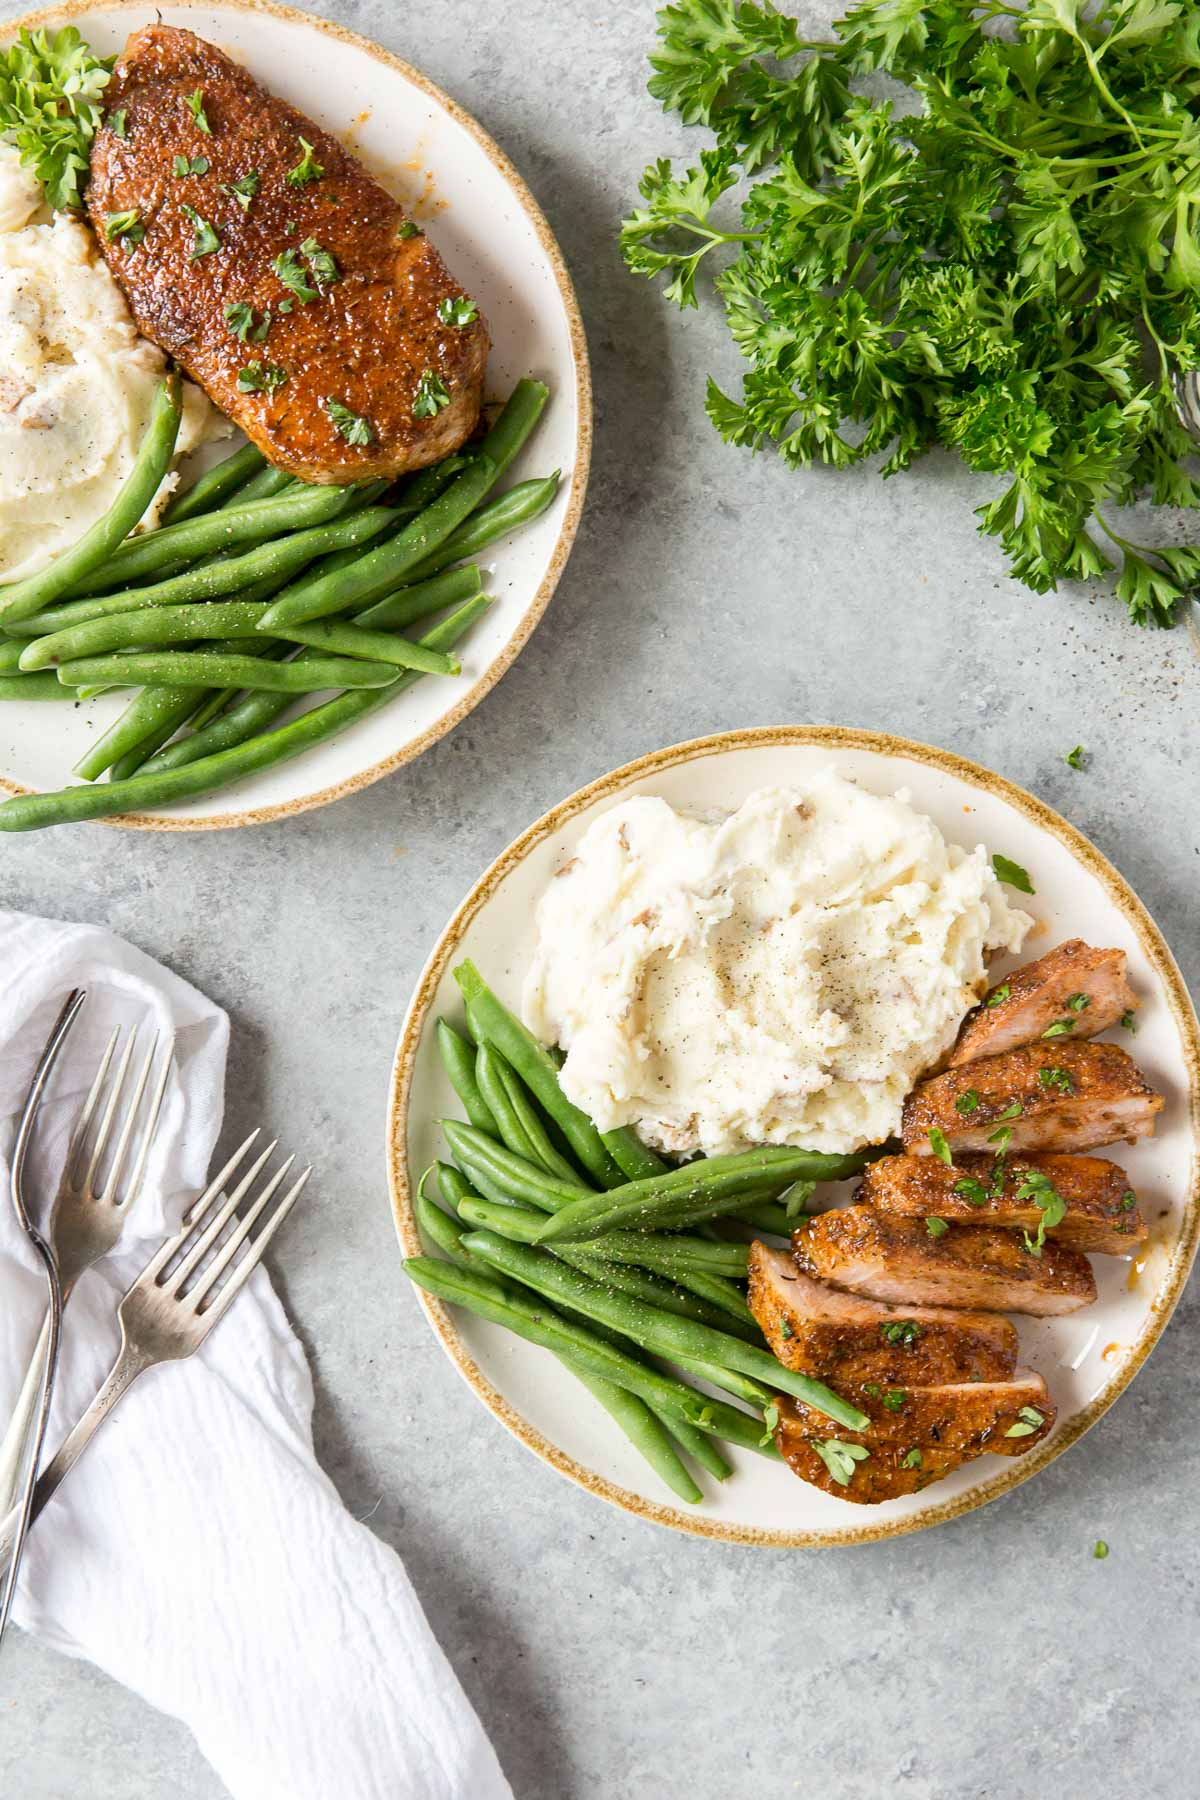 baked pork chops served with mashed potatoes and green beans